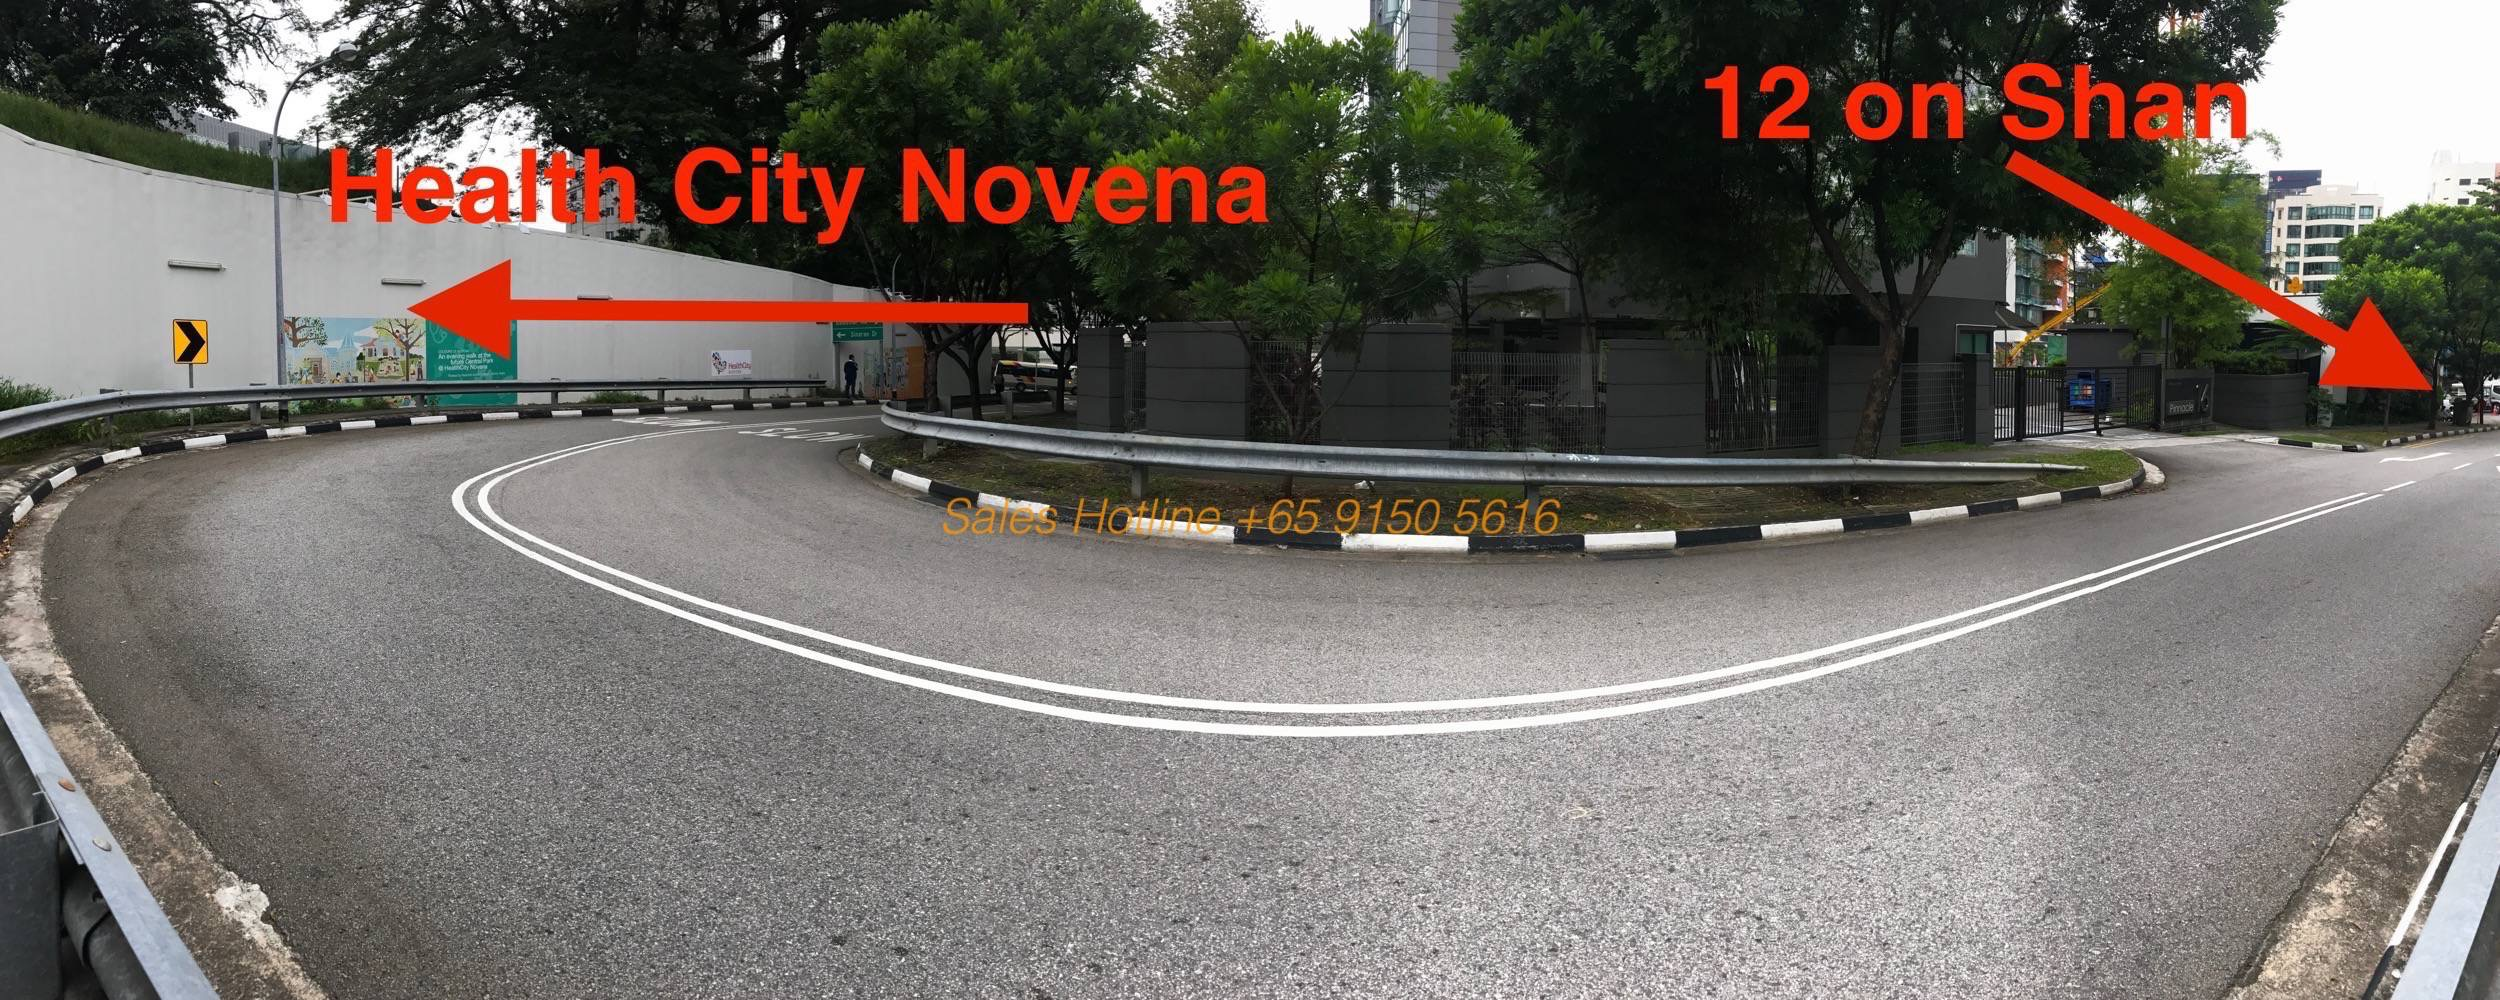 12 on Shan - Health City Novena Distance